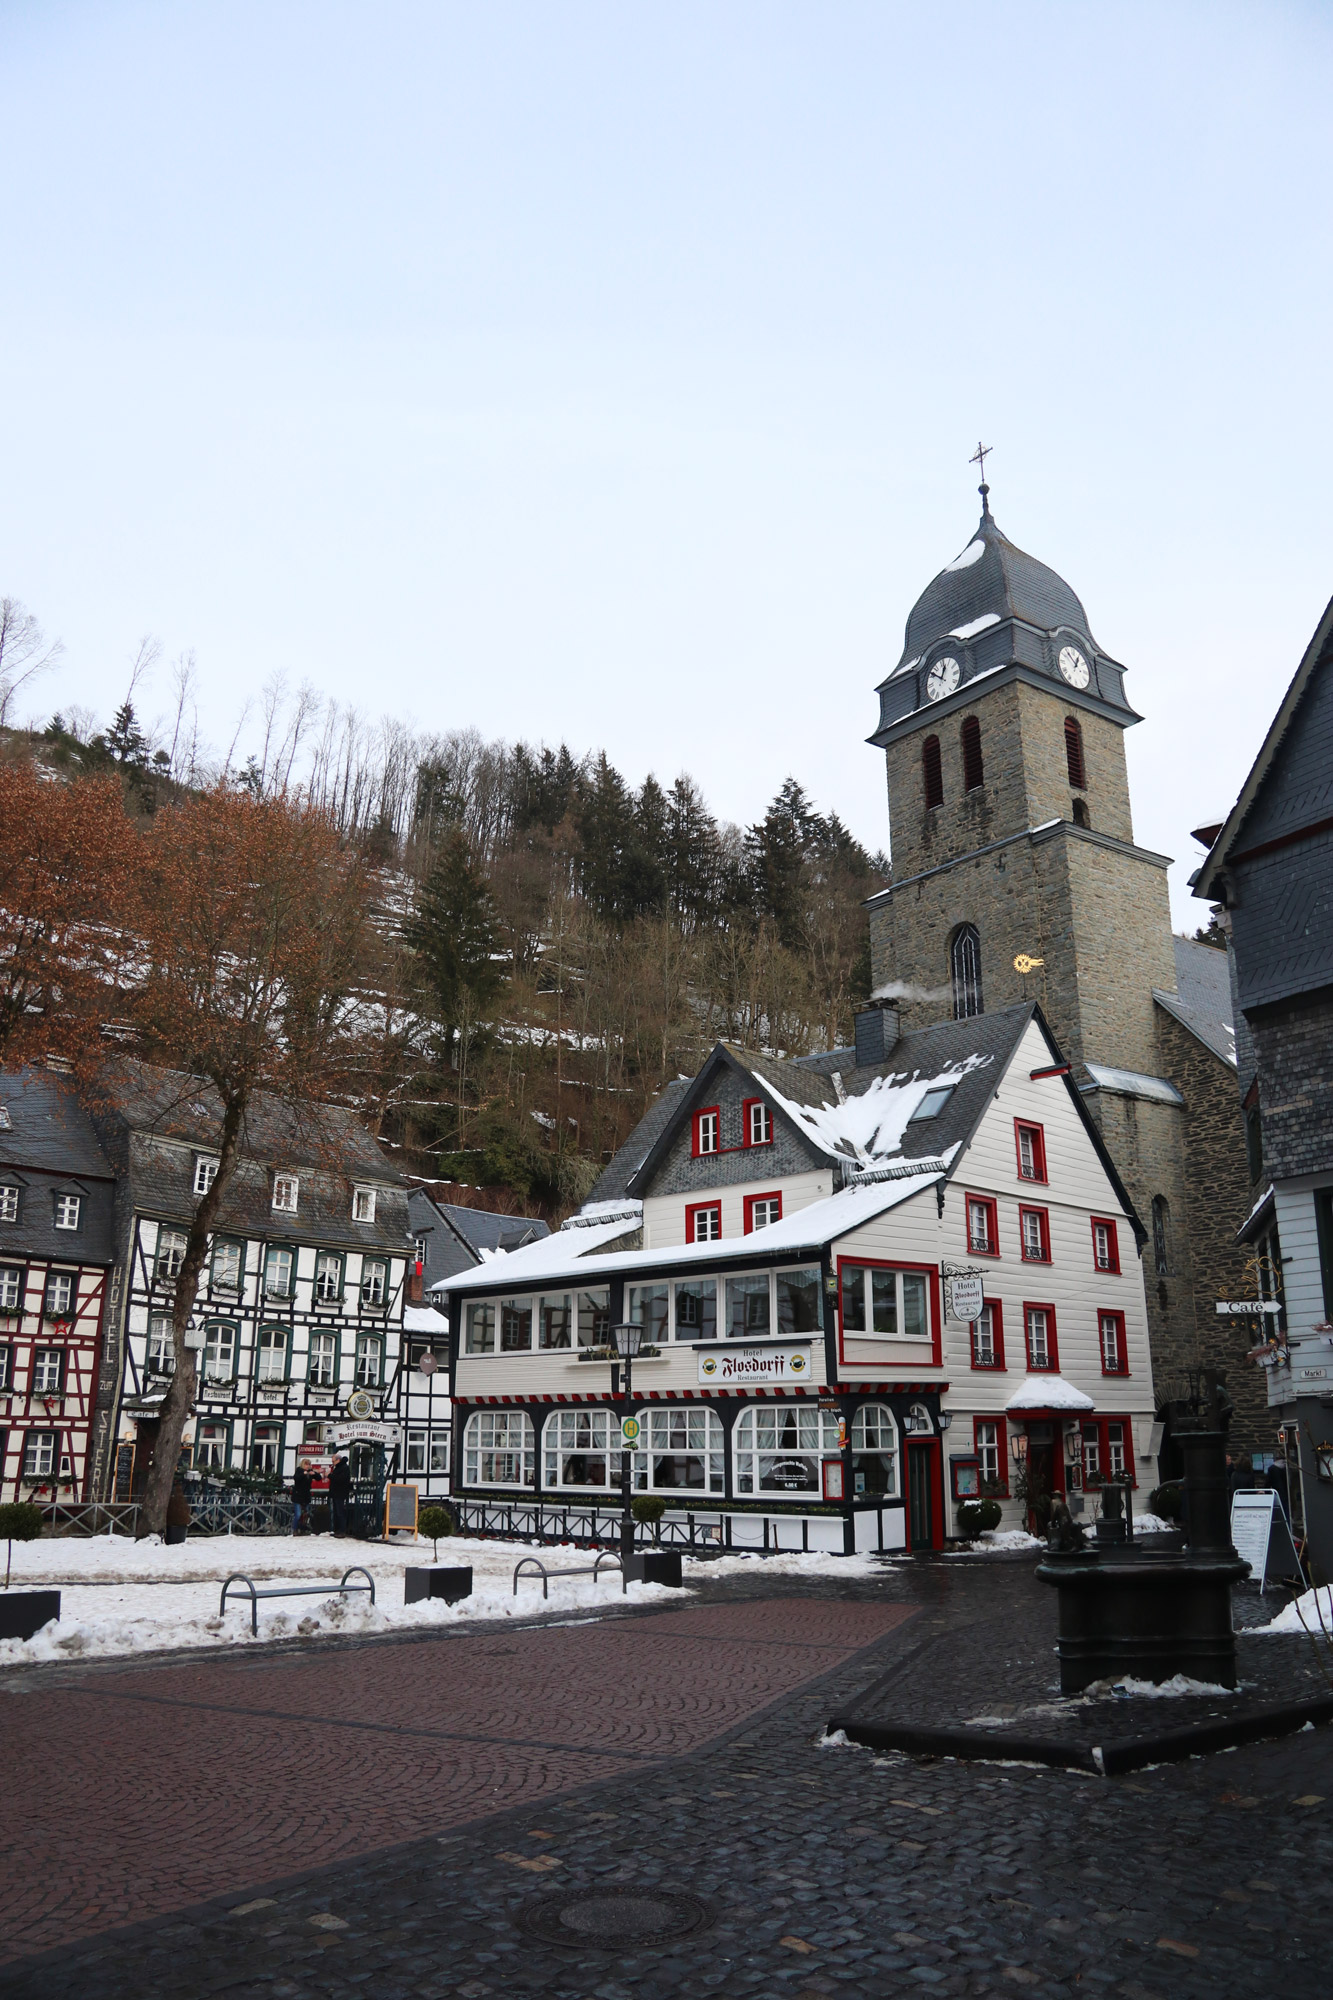 Stedentrip Monschau - Aukloster